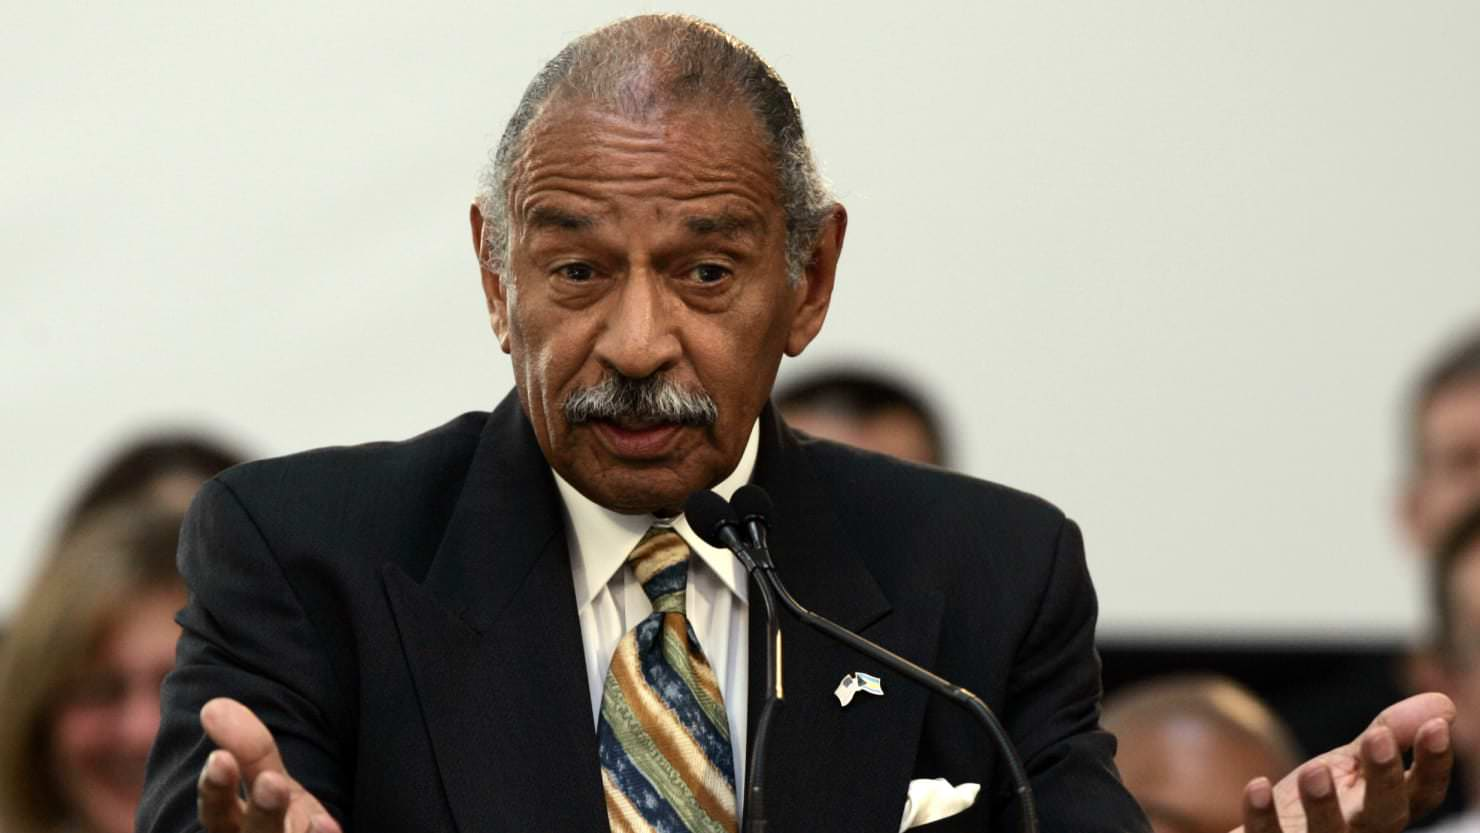 Democrat Rep John Conyers Gets SAVAGED on Twitter Following Sexual ...